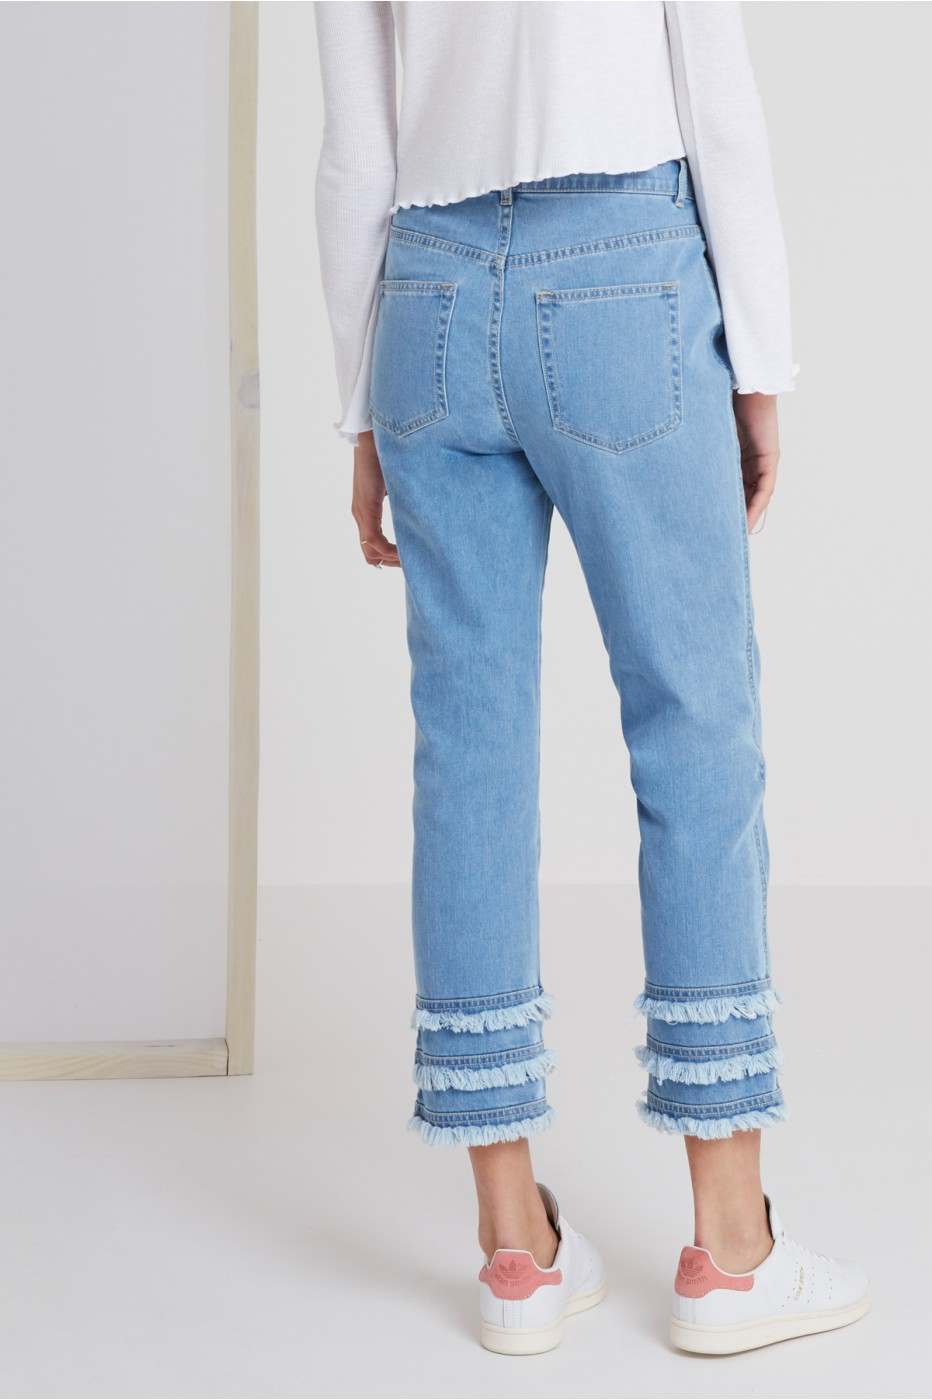 Shop The Fifth Empire Jeans.